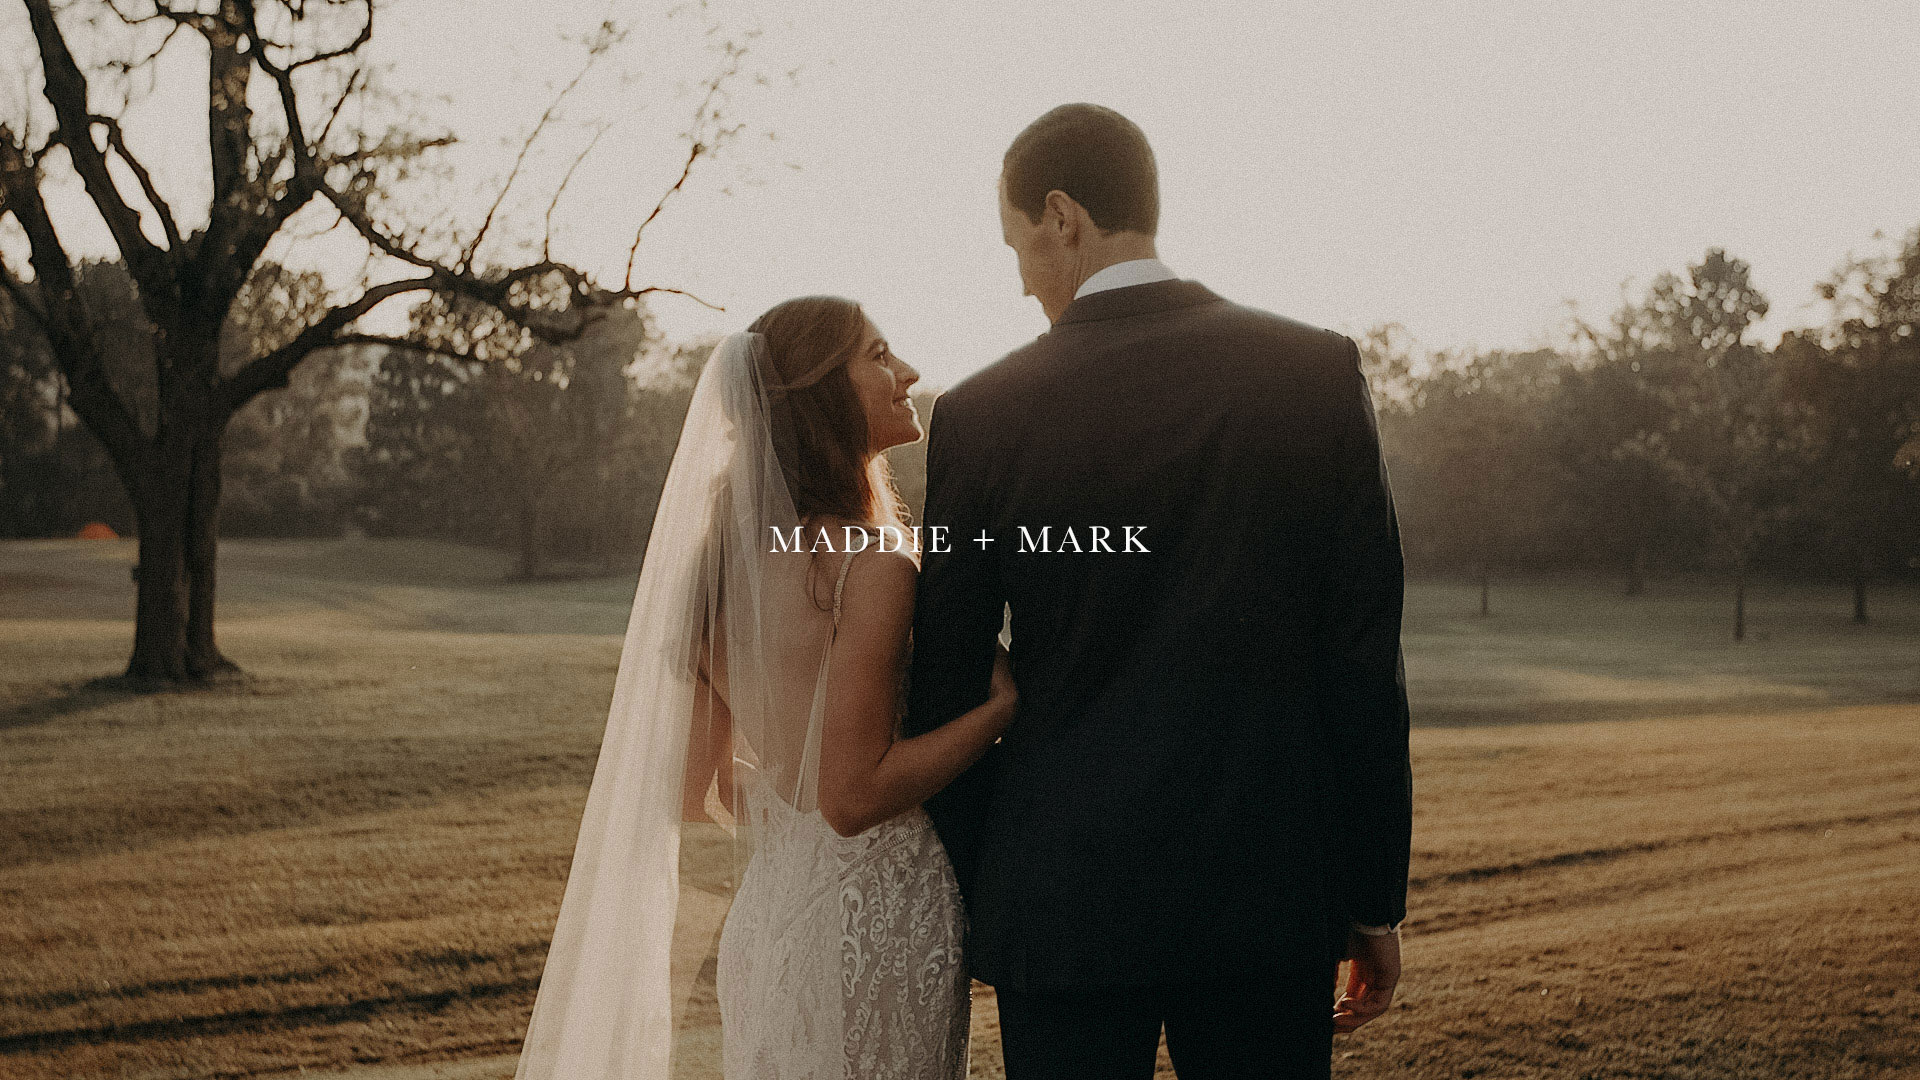 Maddie + Mark | Colcord, Oklahoma | Flint Creek Farm